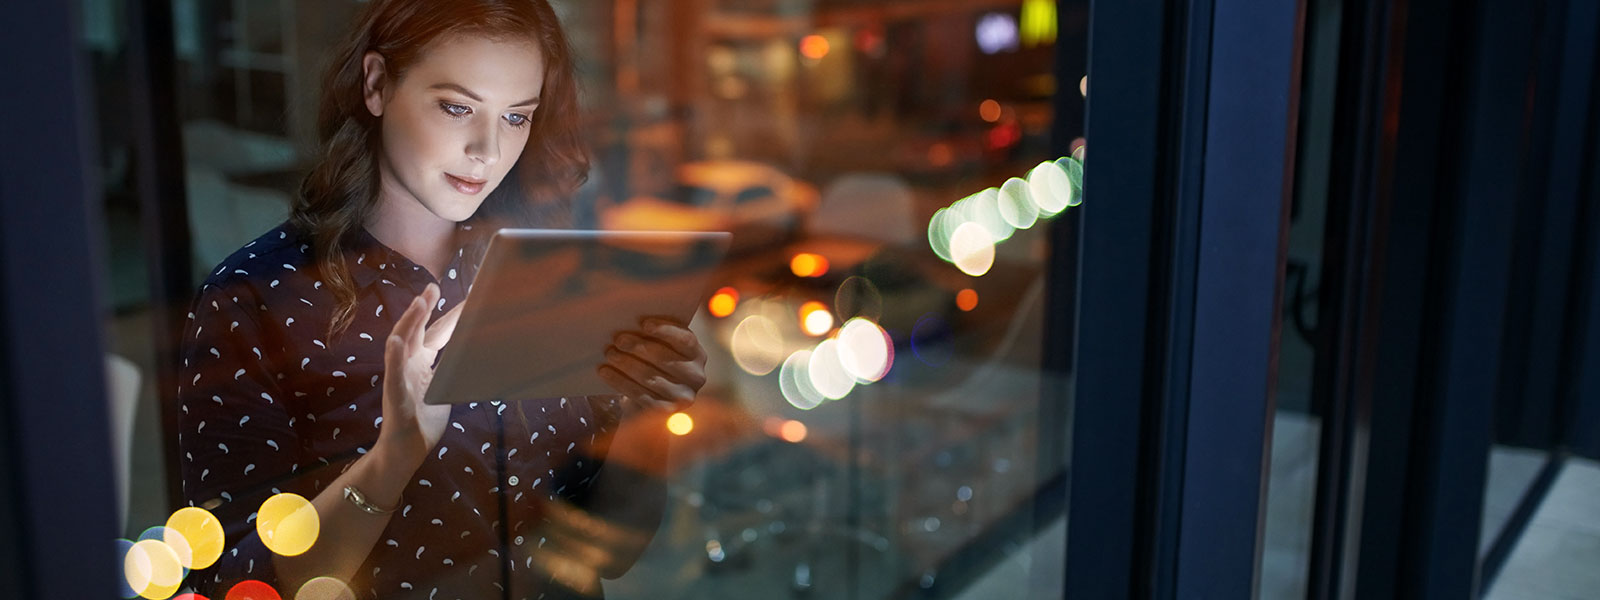 Woman standing by a window looking at an ipad